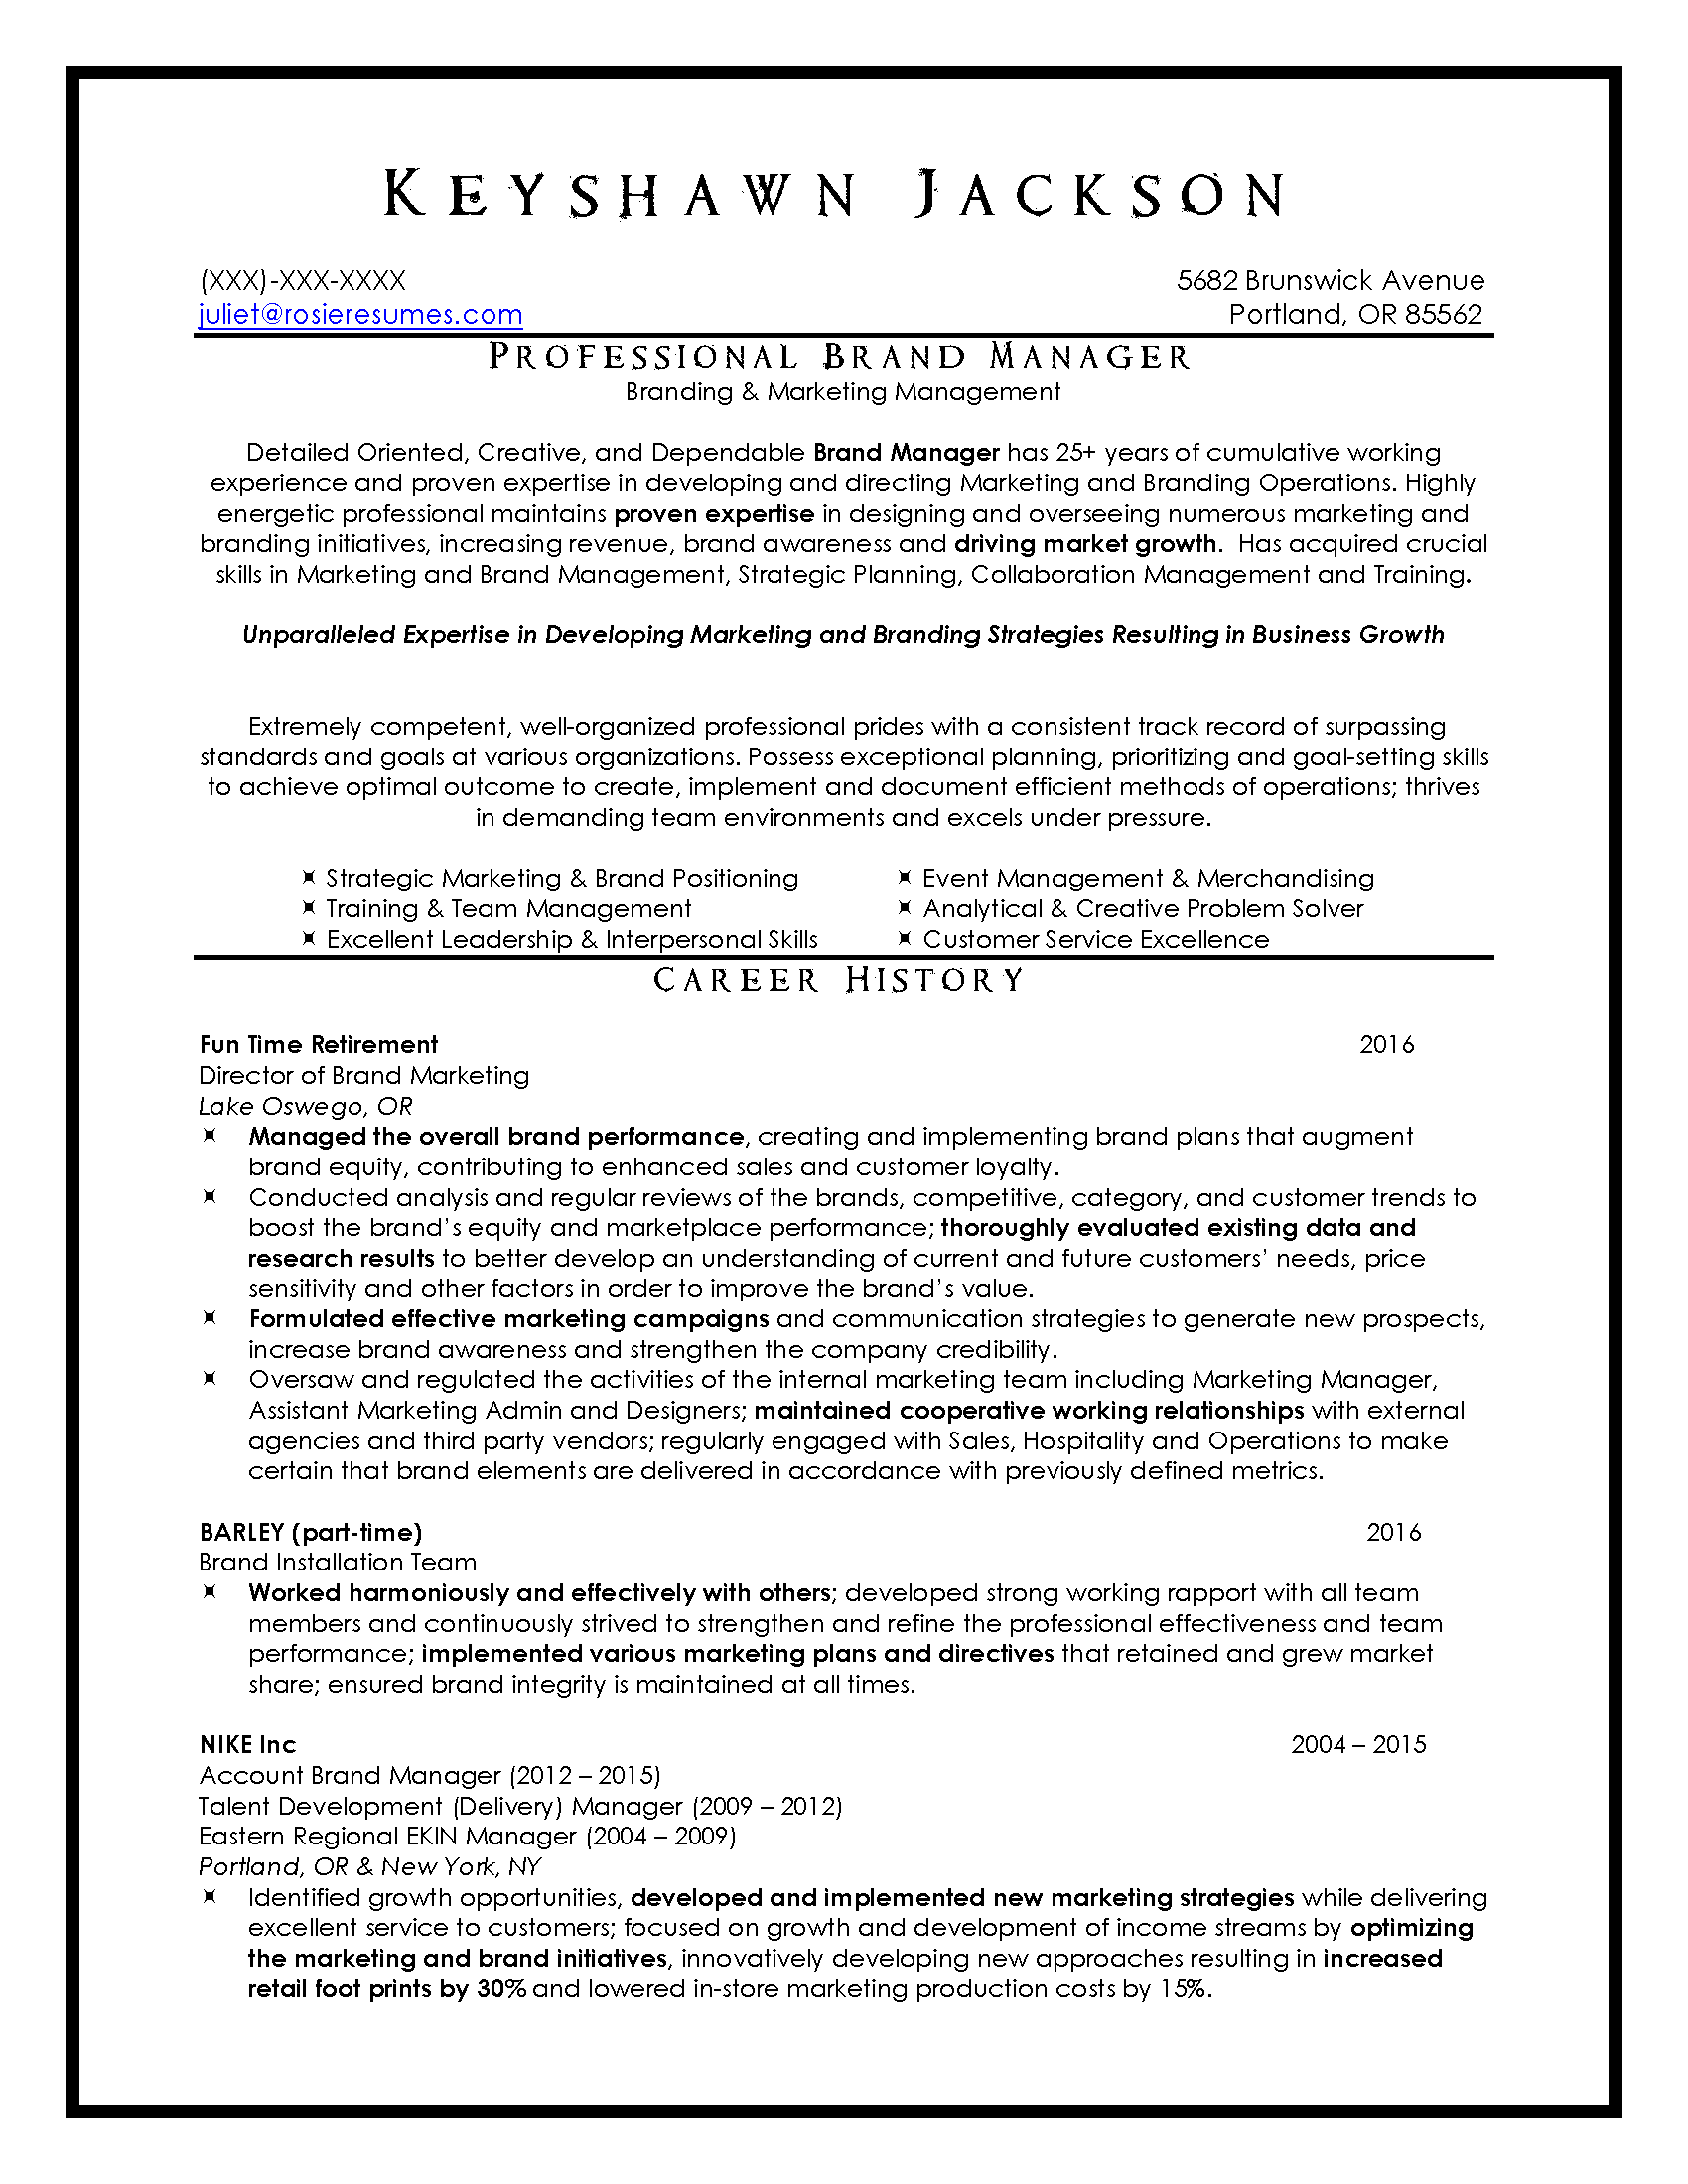 RRTRS Marketing Manager Resume Sample_Page_1